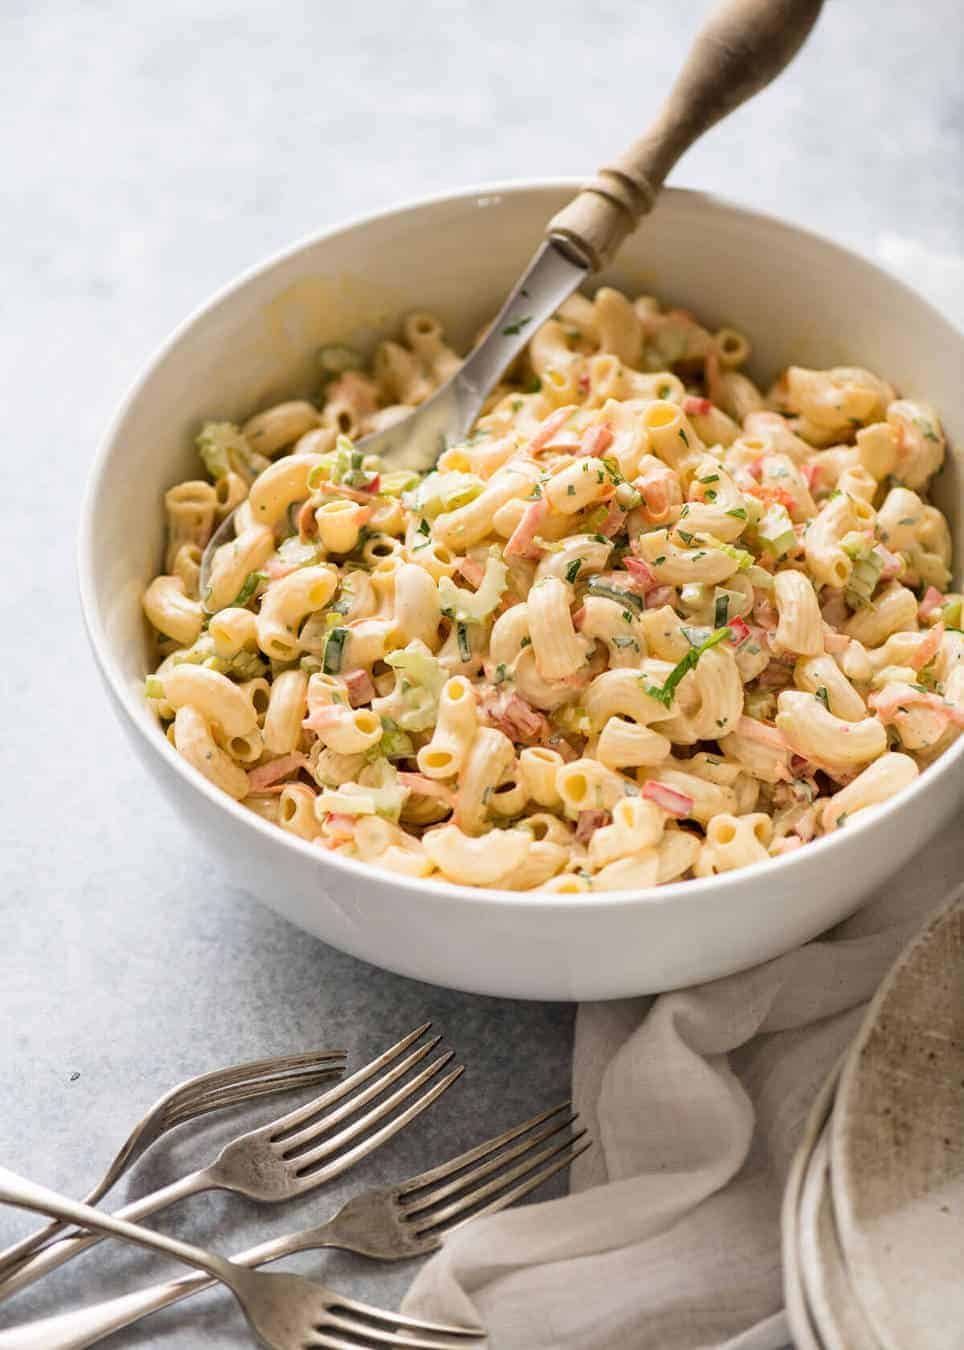 More and more mayo is not the way to a great Macaroni Pasta. Salted cooking water is! www.recipetineats.com